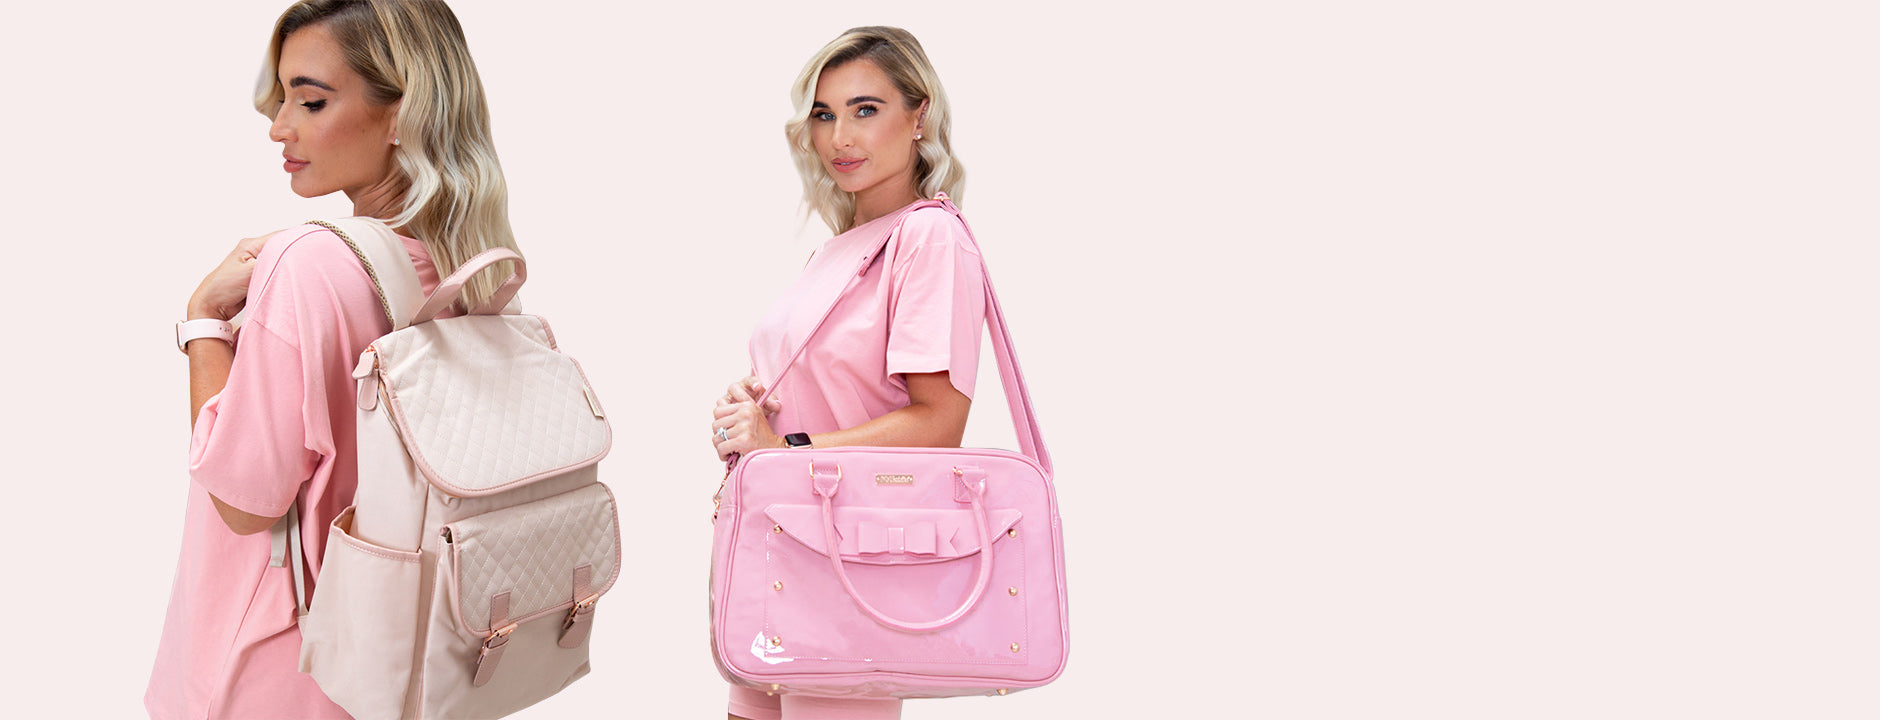 My Babiie Billie Faiers Changing Bags